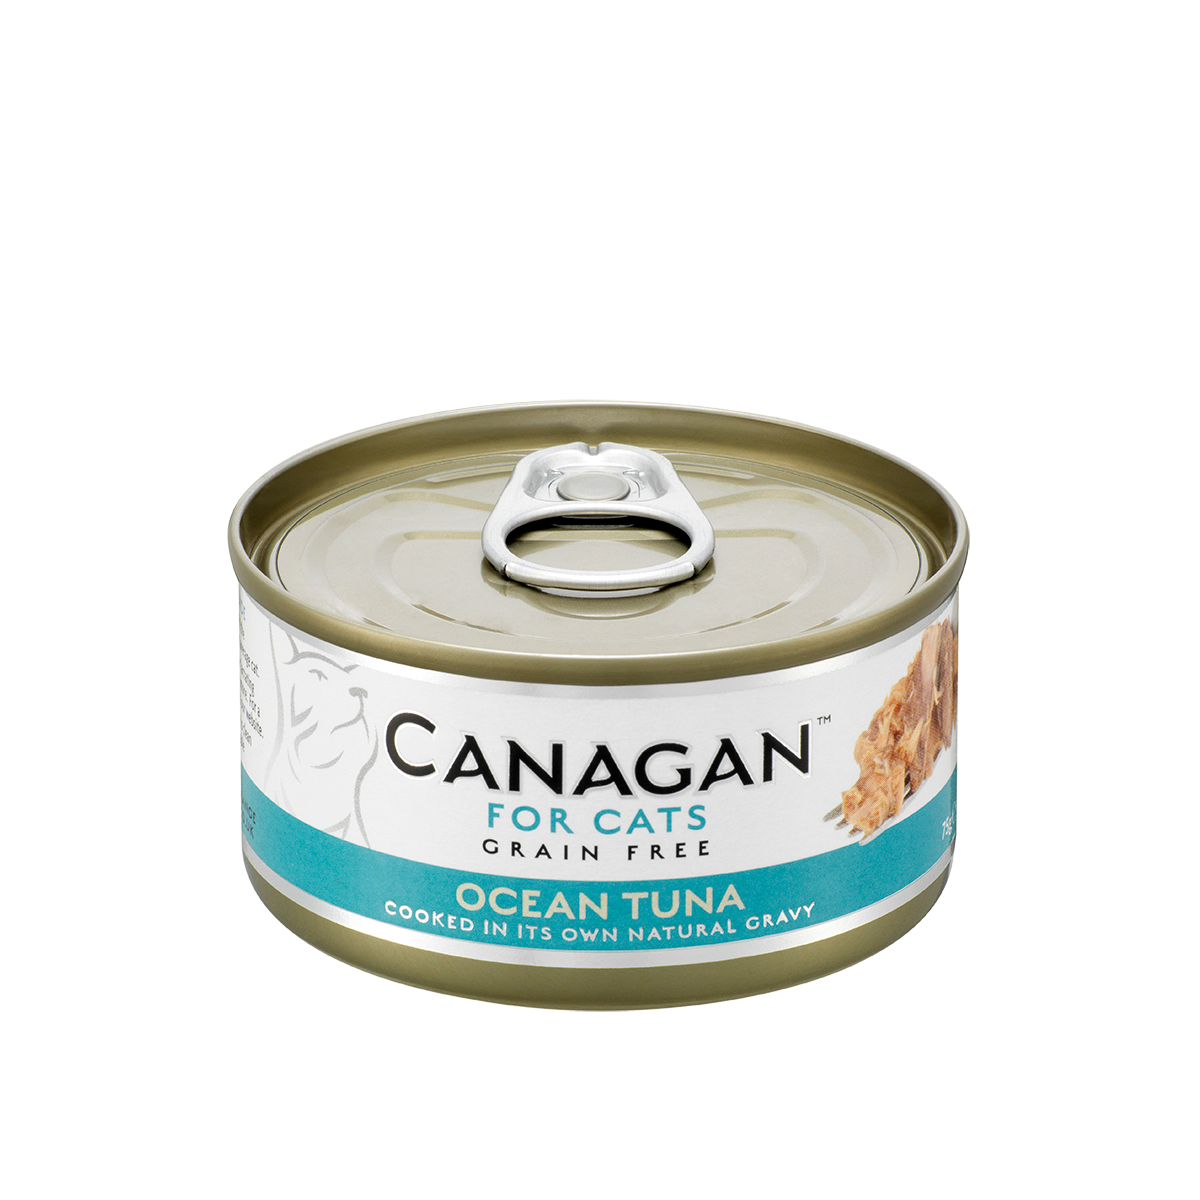 Canagan Ocean Tuna for Cats 75g